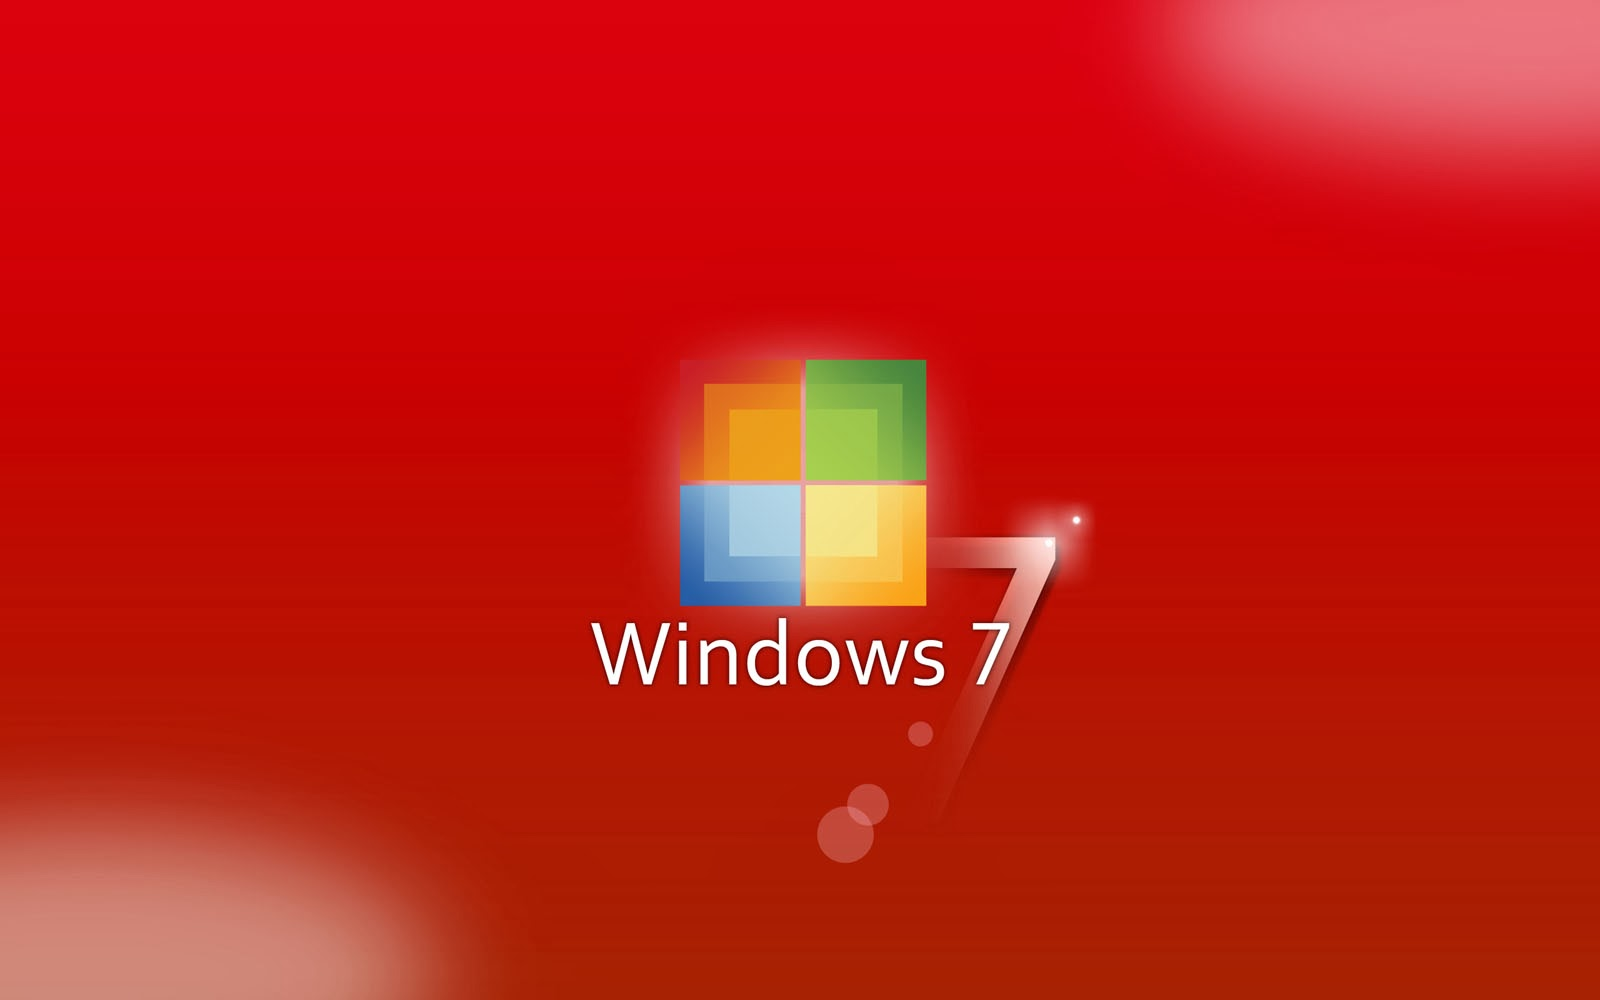 Wallpapers Windows 7 Red Wallpapers